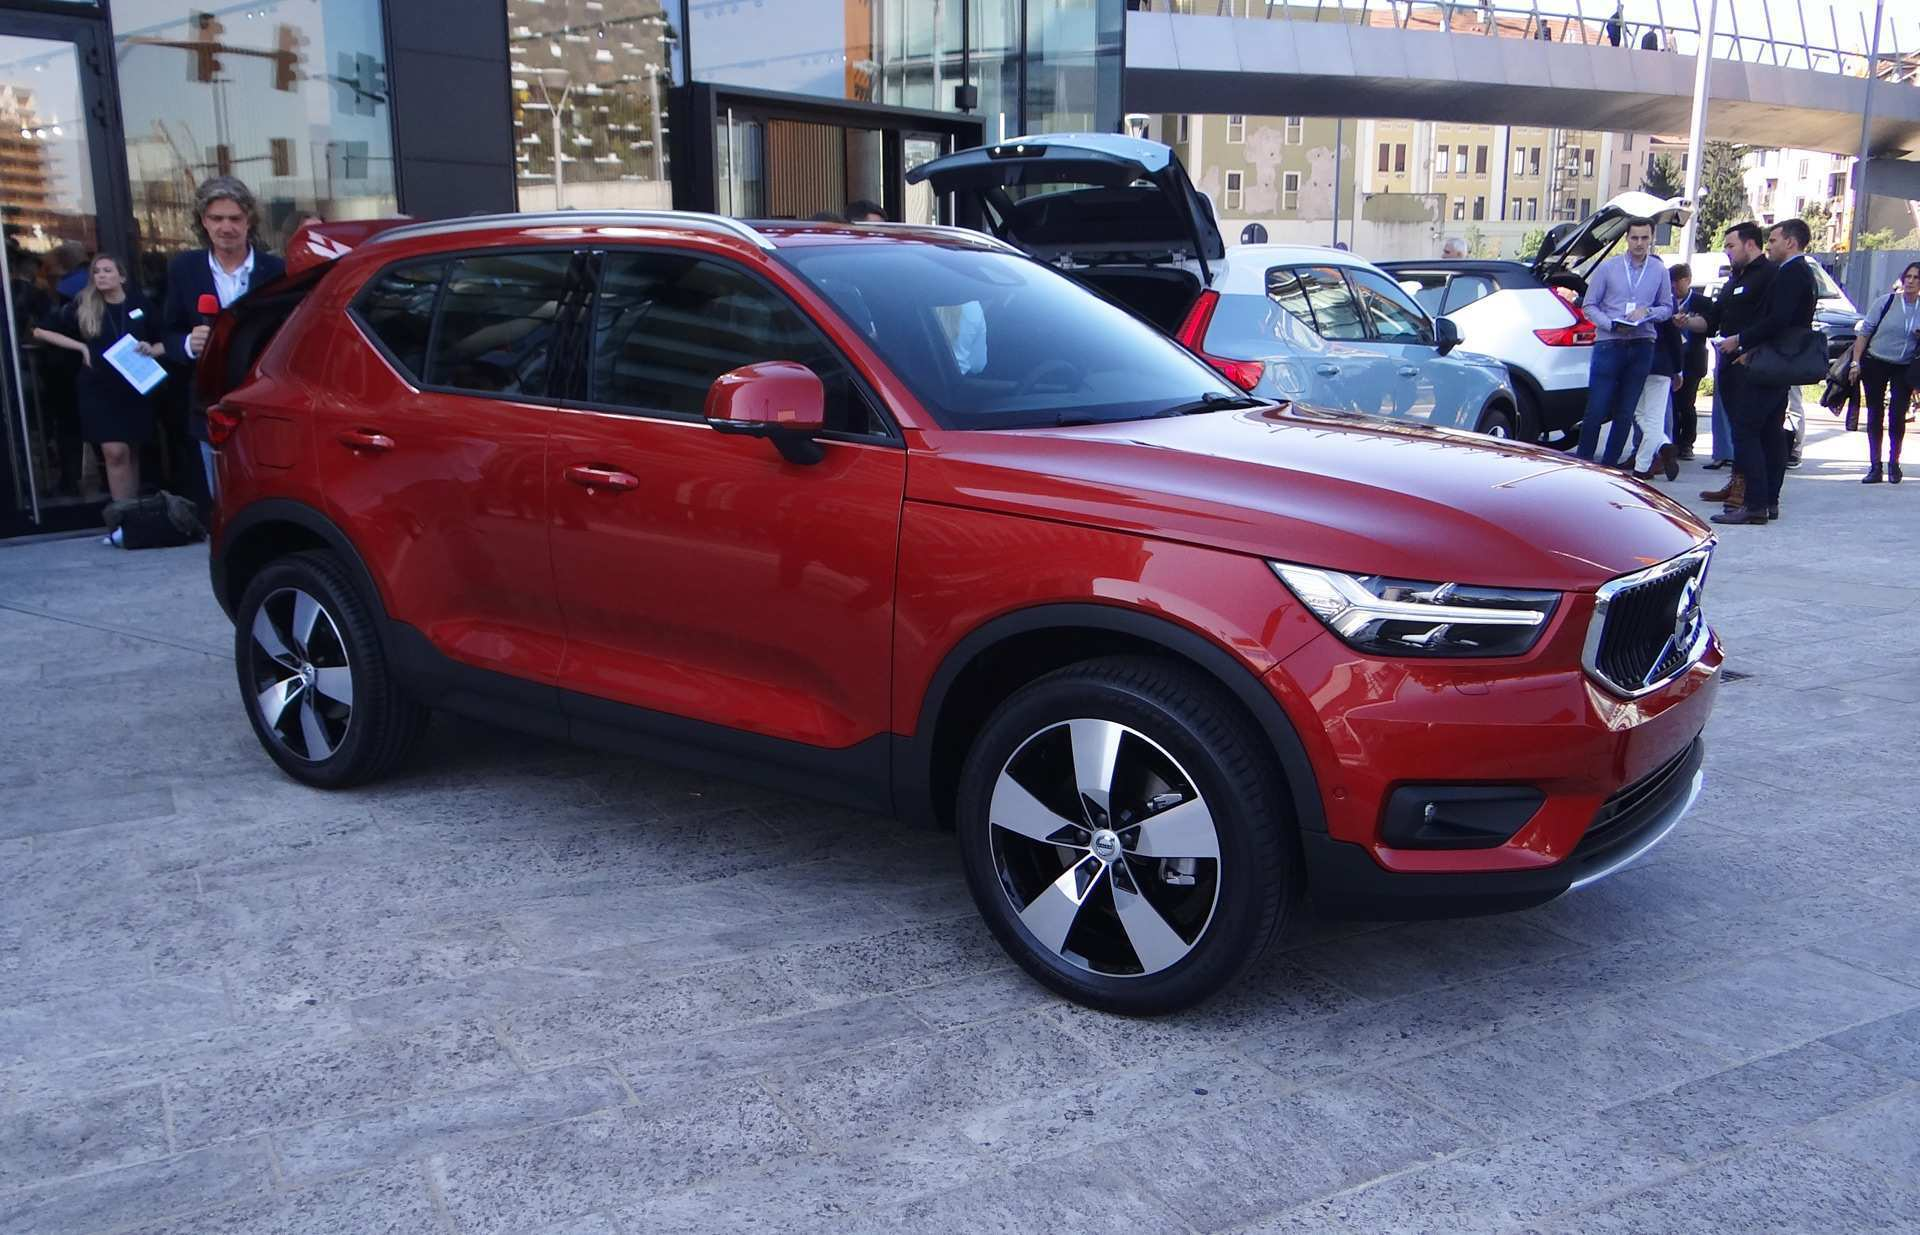 28 All New Volvo To Go Electric By 2019 Release Date